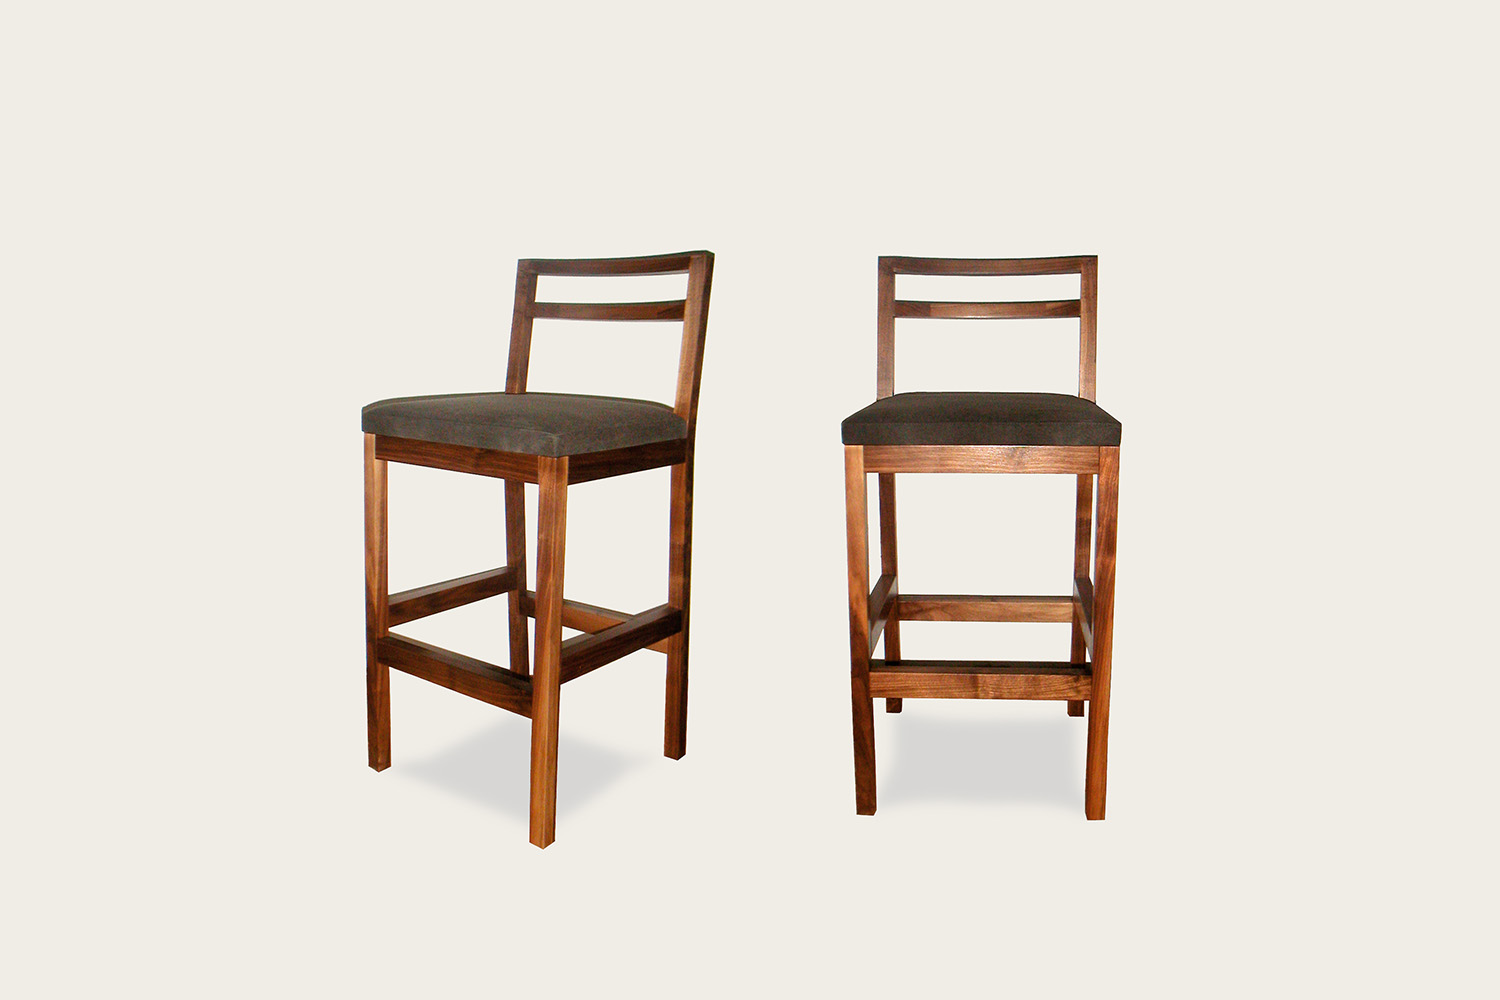 Ideal Bar Stool in walnut with upholstered seat - Speke Klein